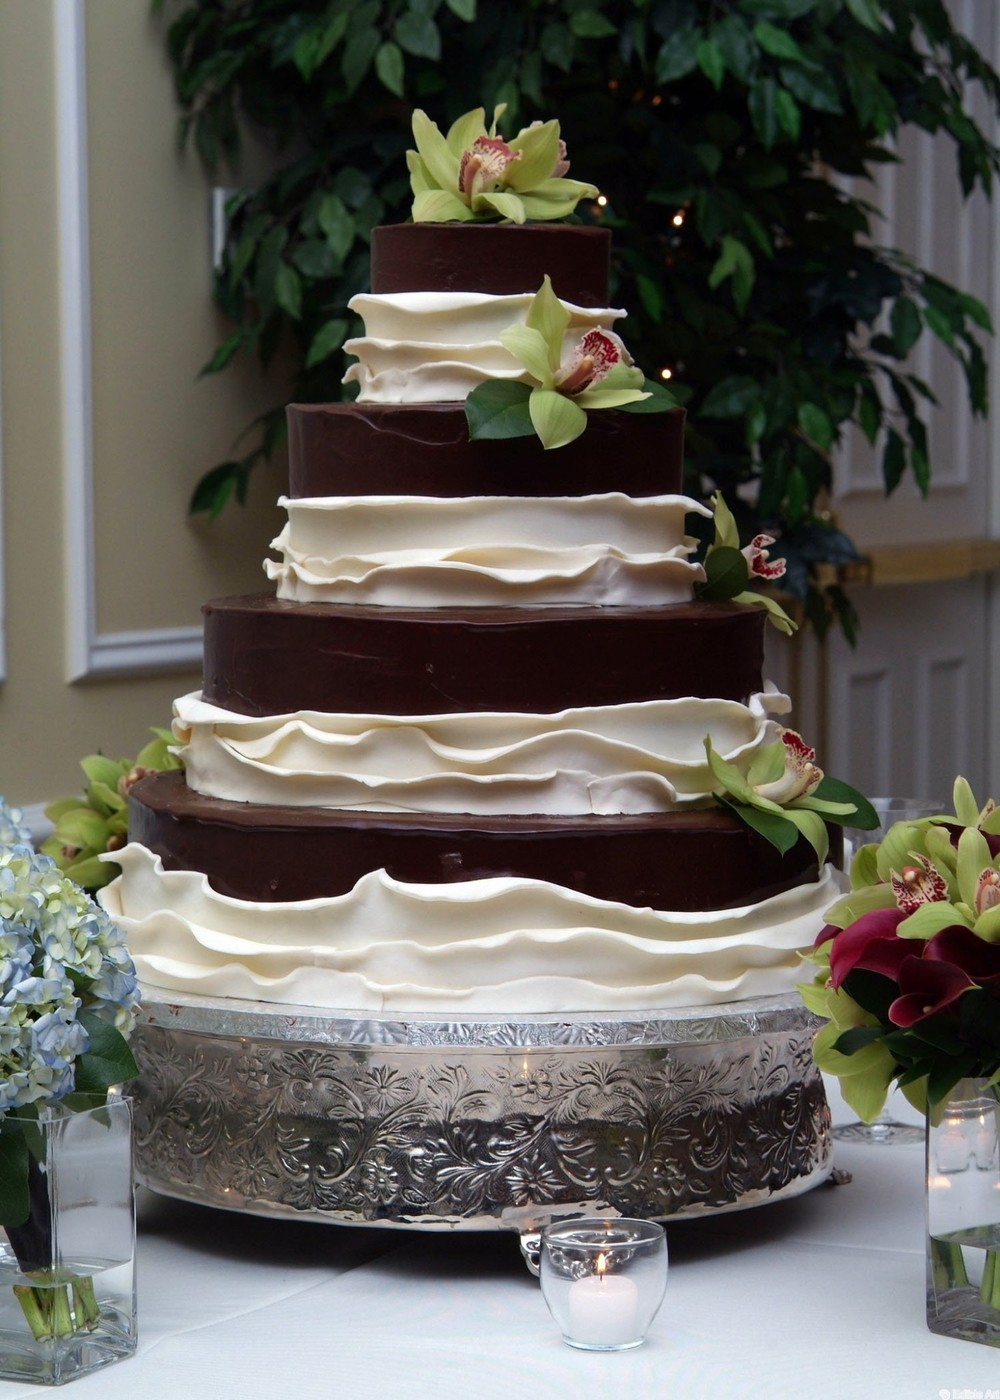 Edible Choc_white by Dara Blakeley SBG.jpg